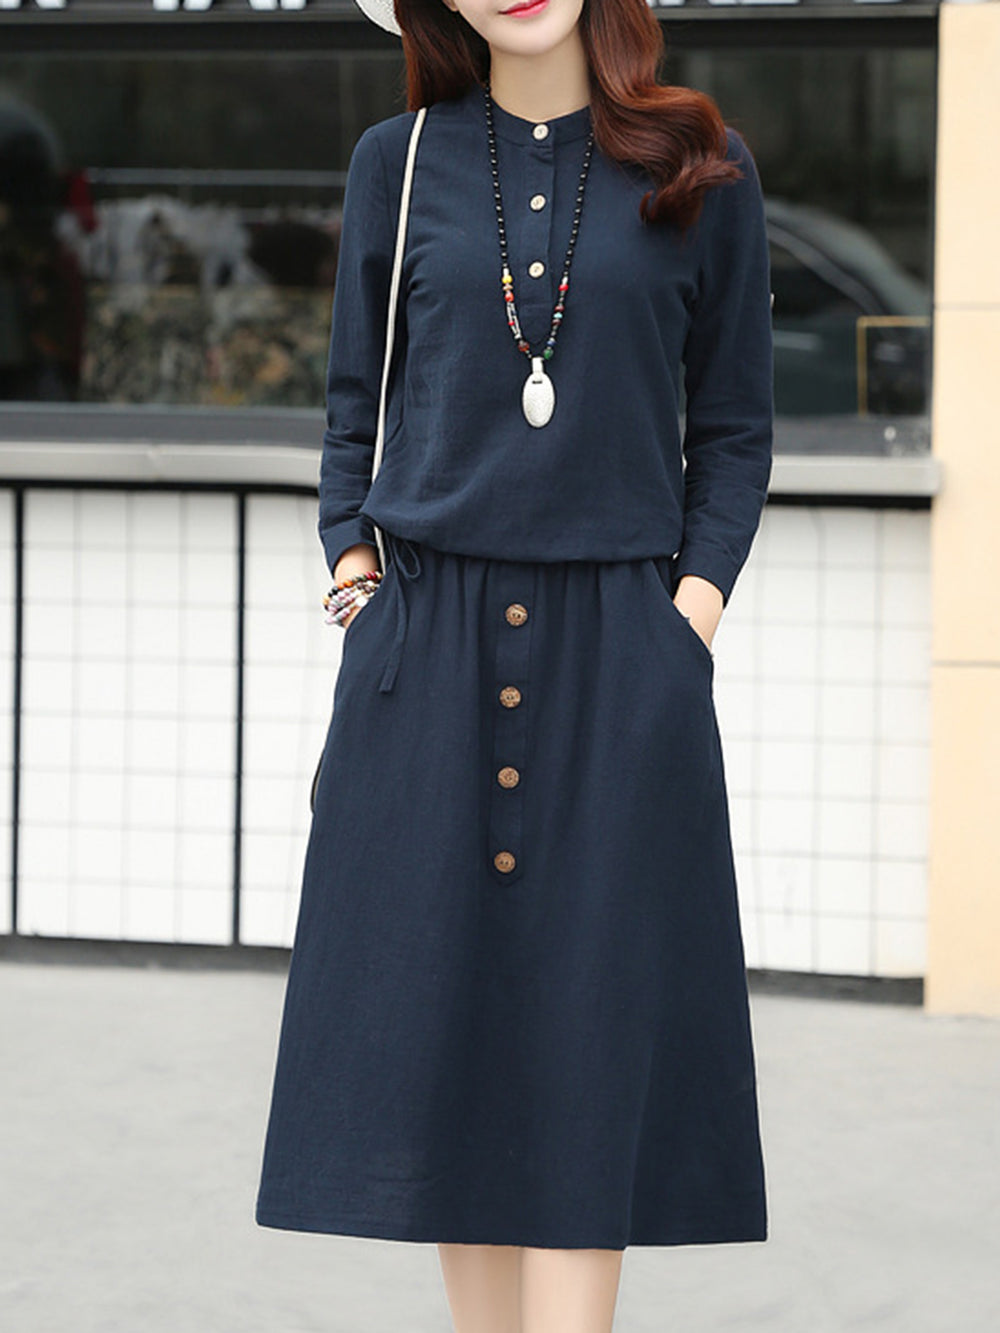 Crew Neck Pockets Casual Long Sleeve Two Pieces Dress